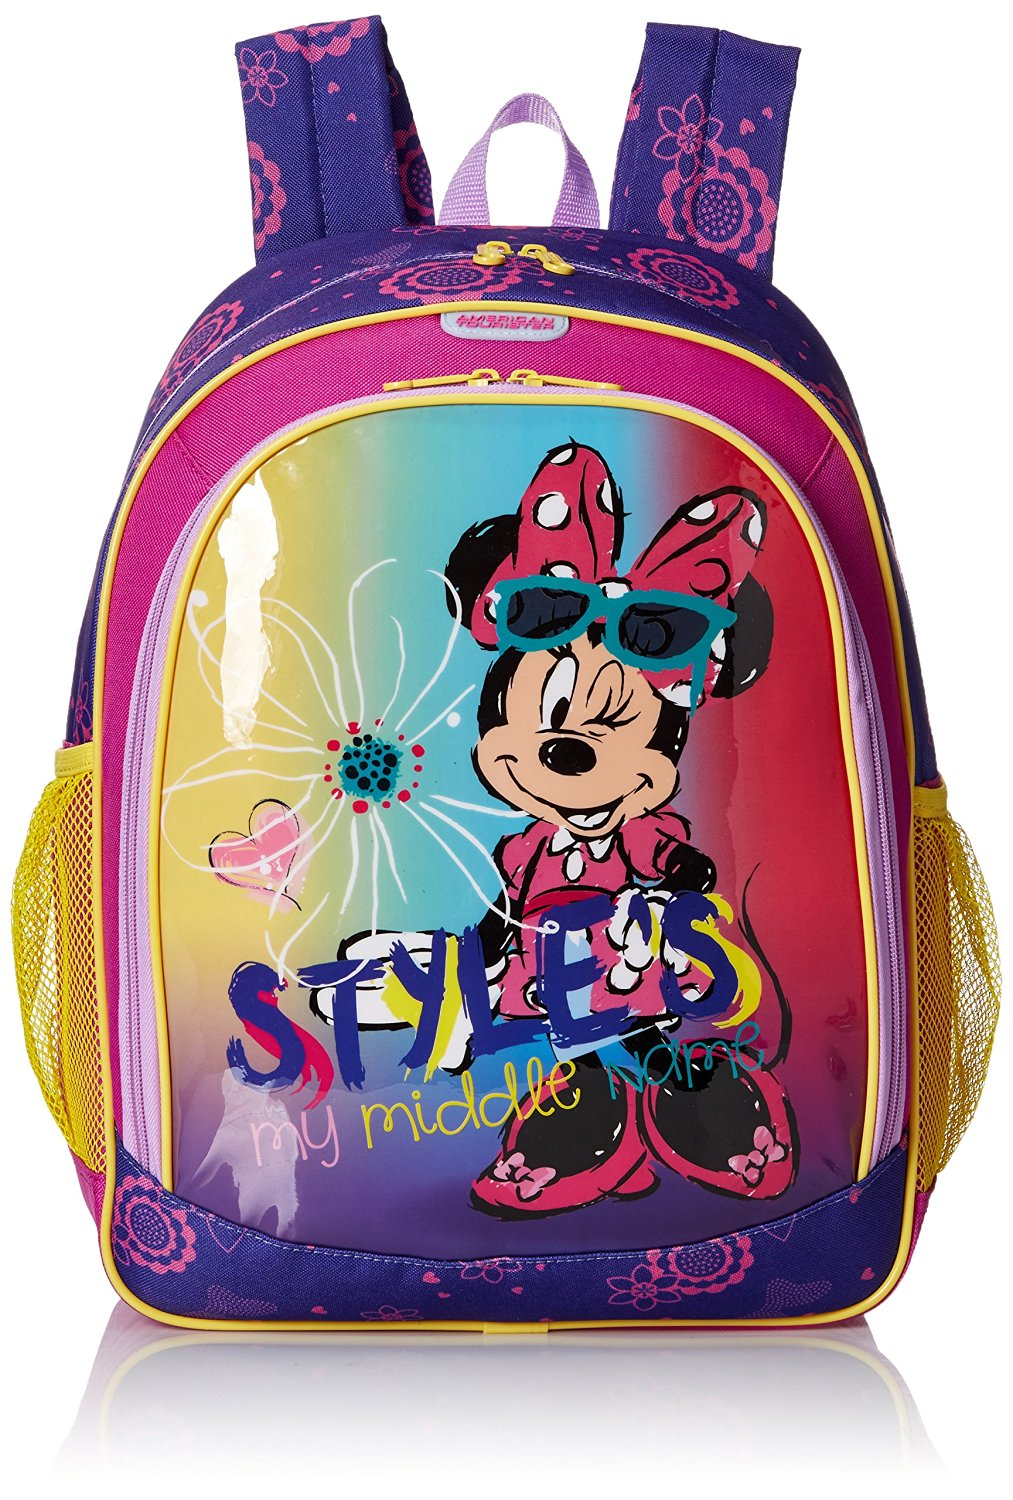 American Tourister 74727 Disney Minnie Mouse Children's Backpack